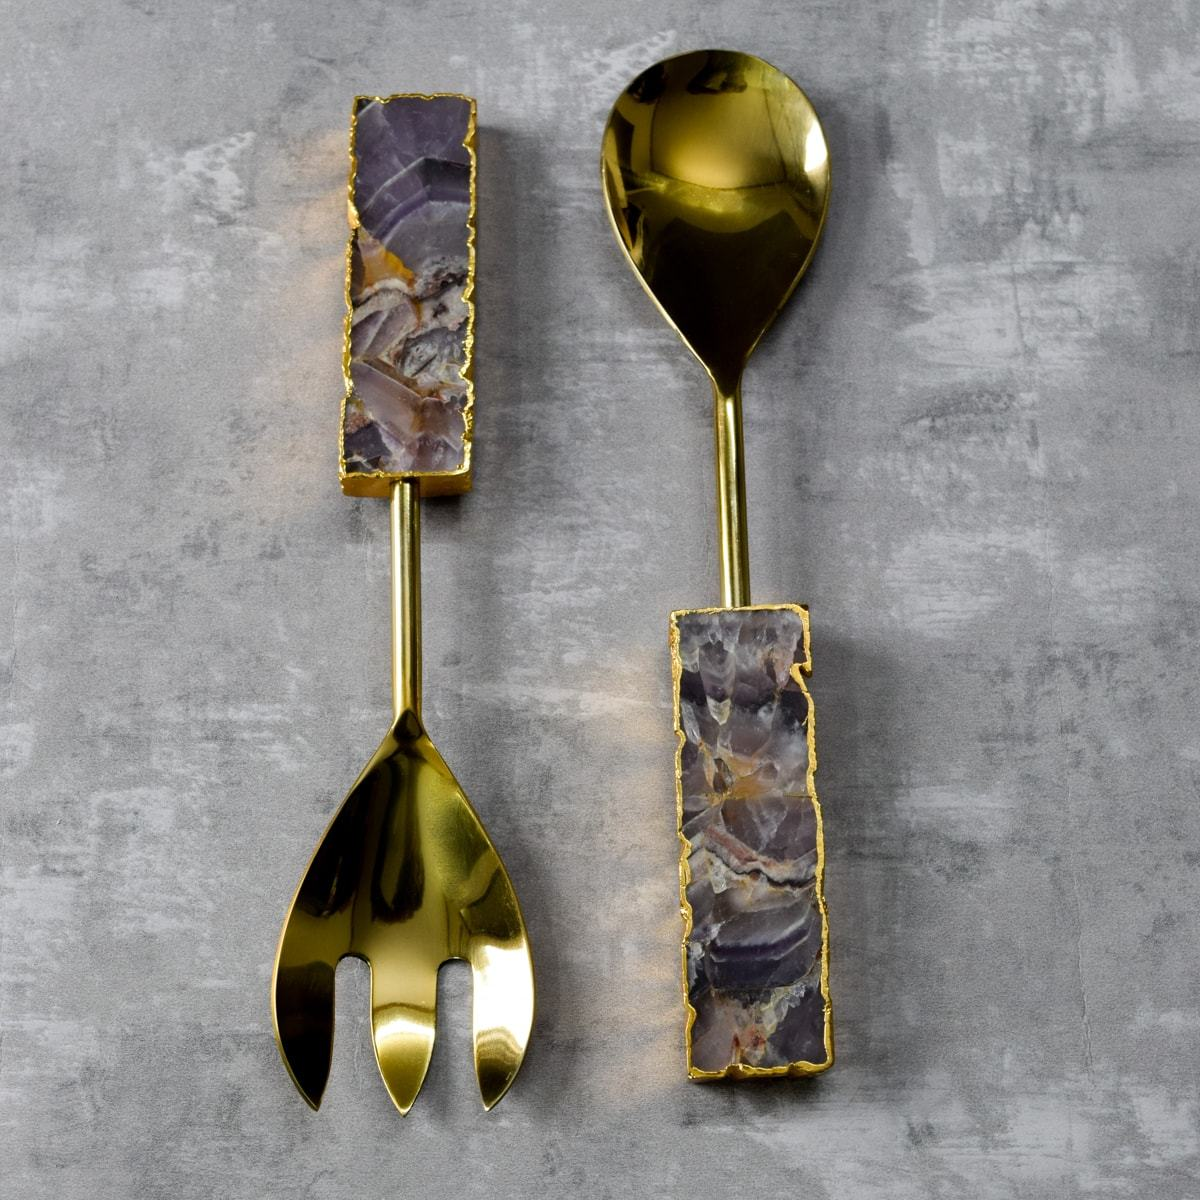 Daniel Amethyst Serving Spoon and Spork Set